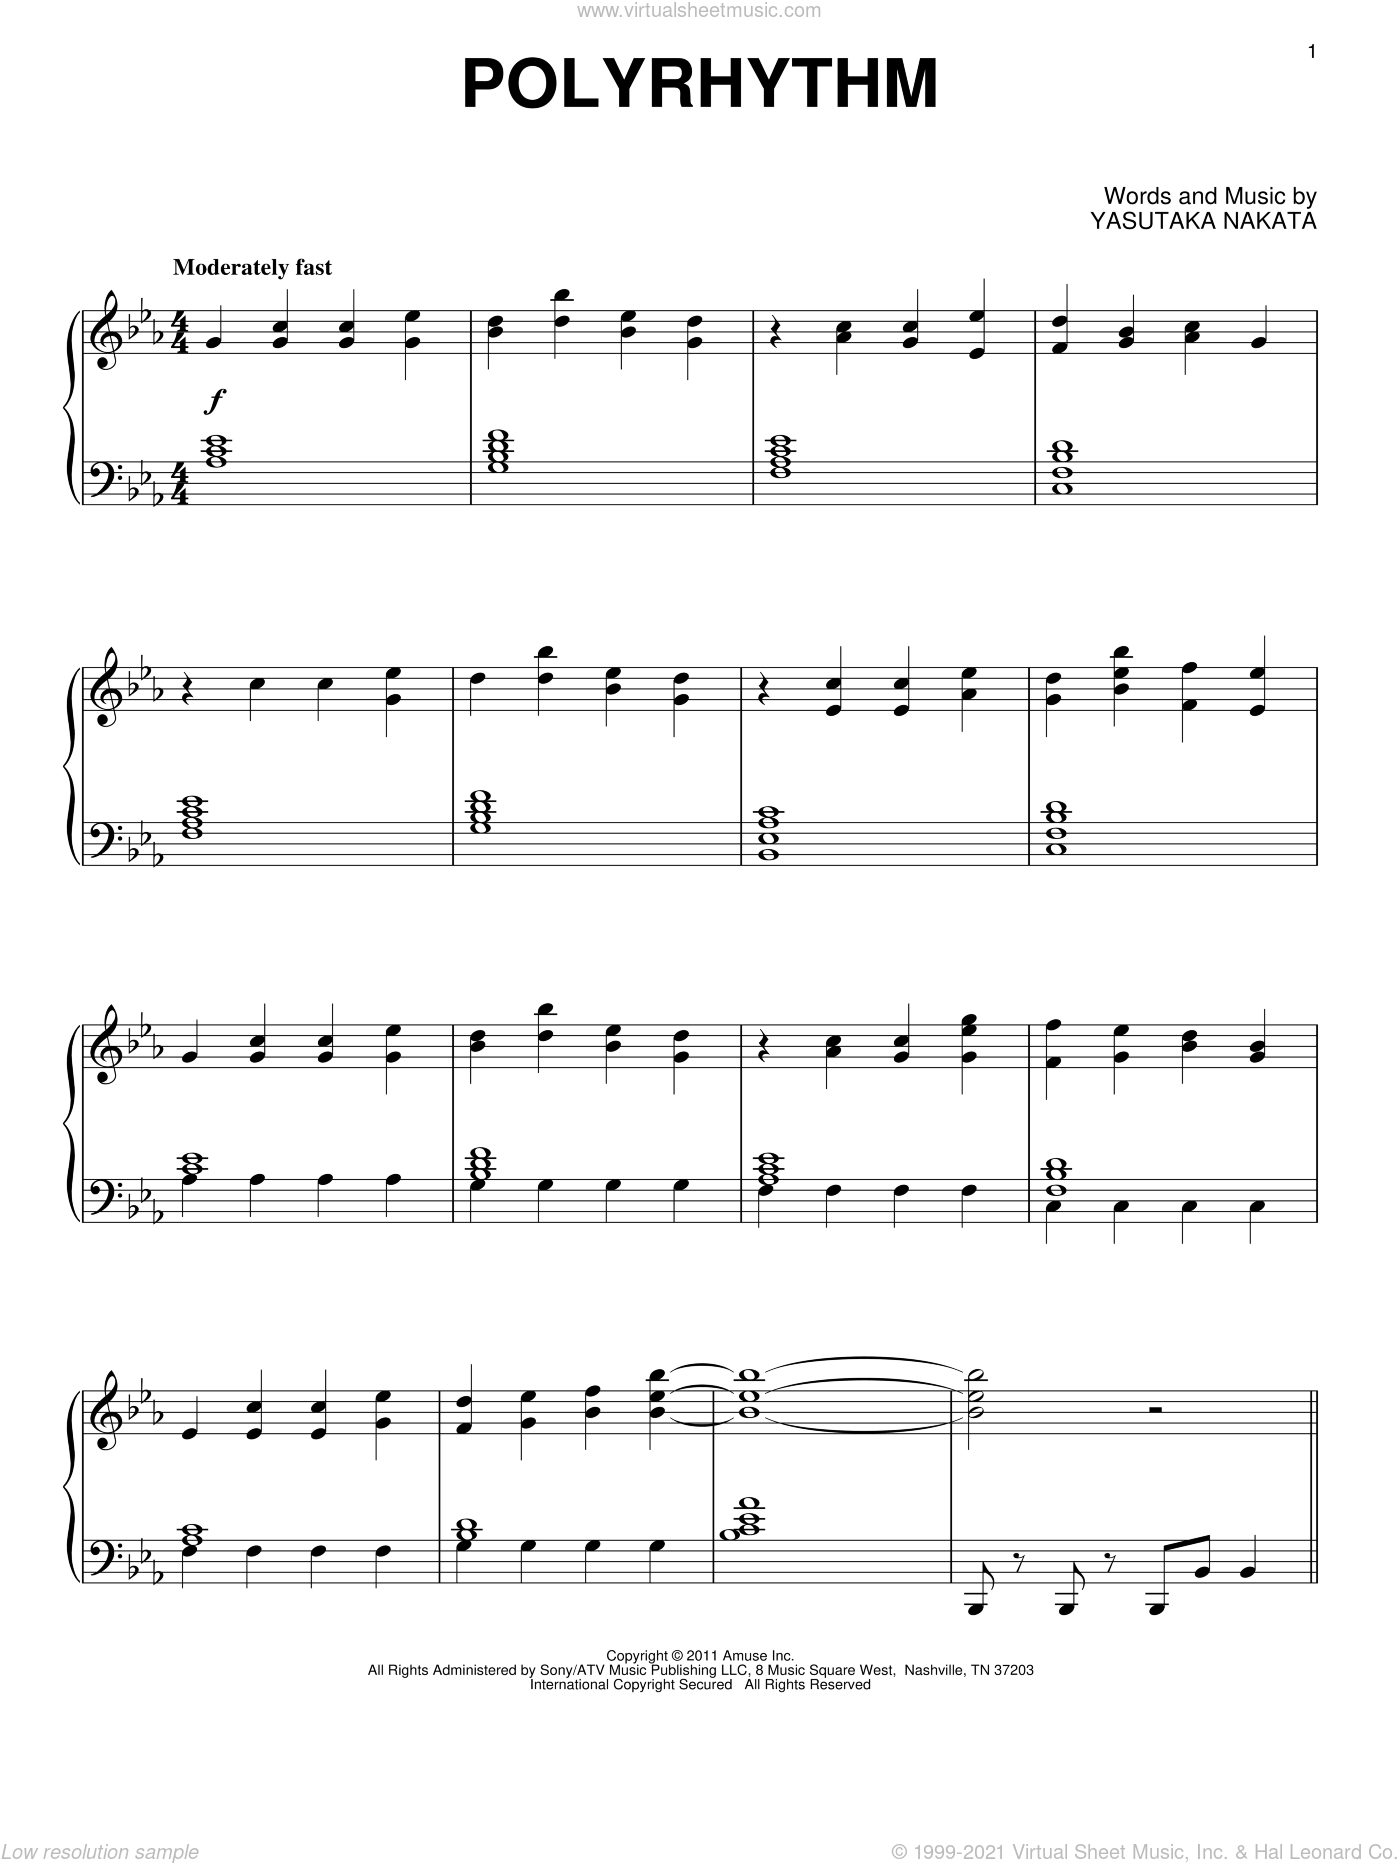 Polyrhythm sheet music for piano solo by Yasutaka Nakata